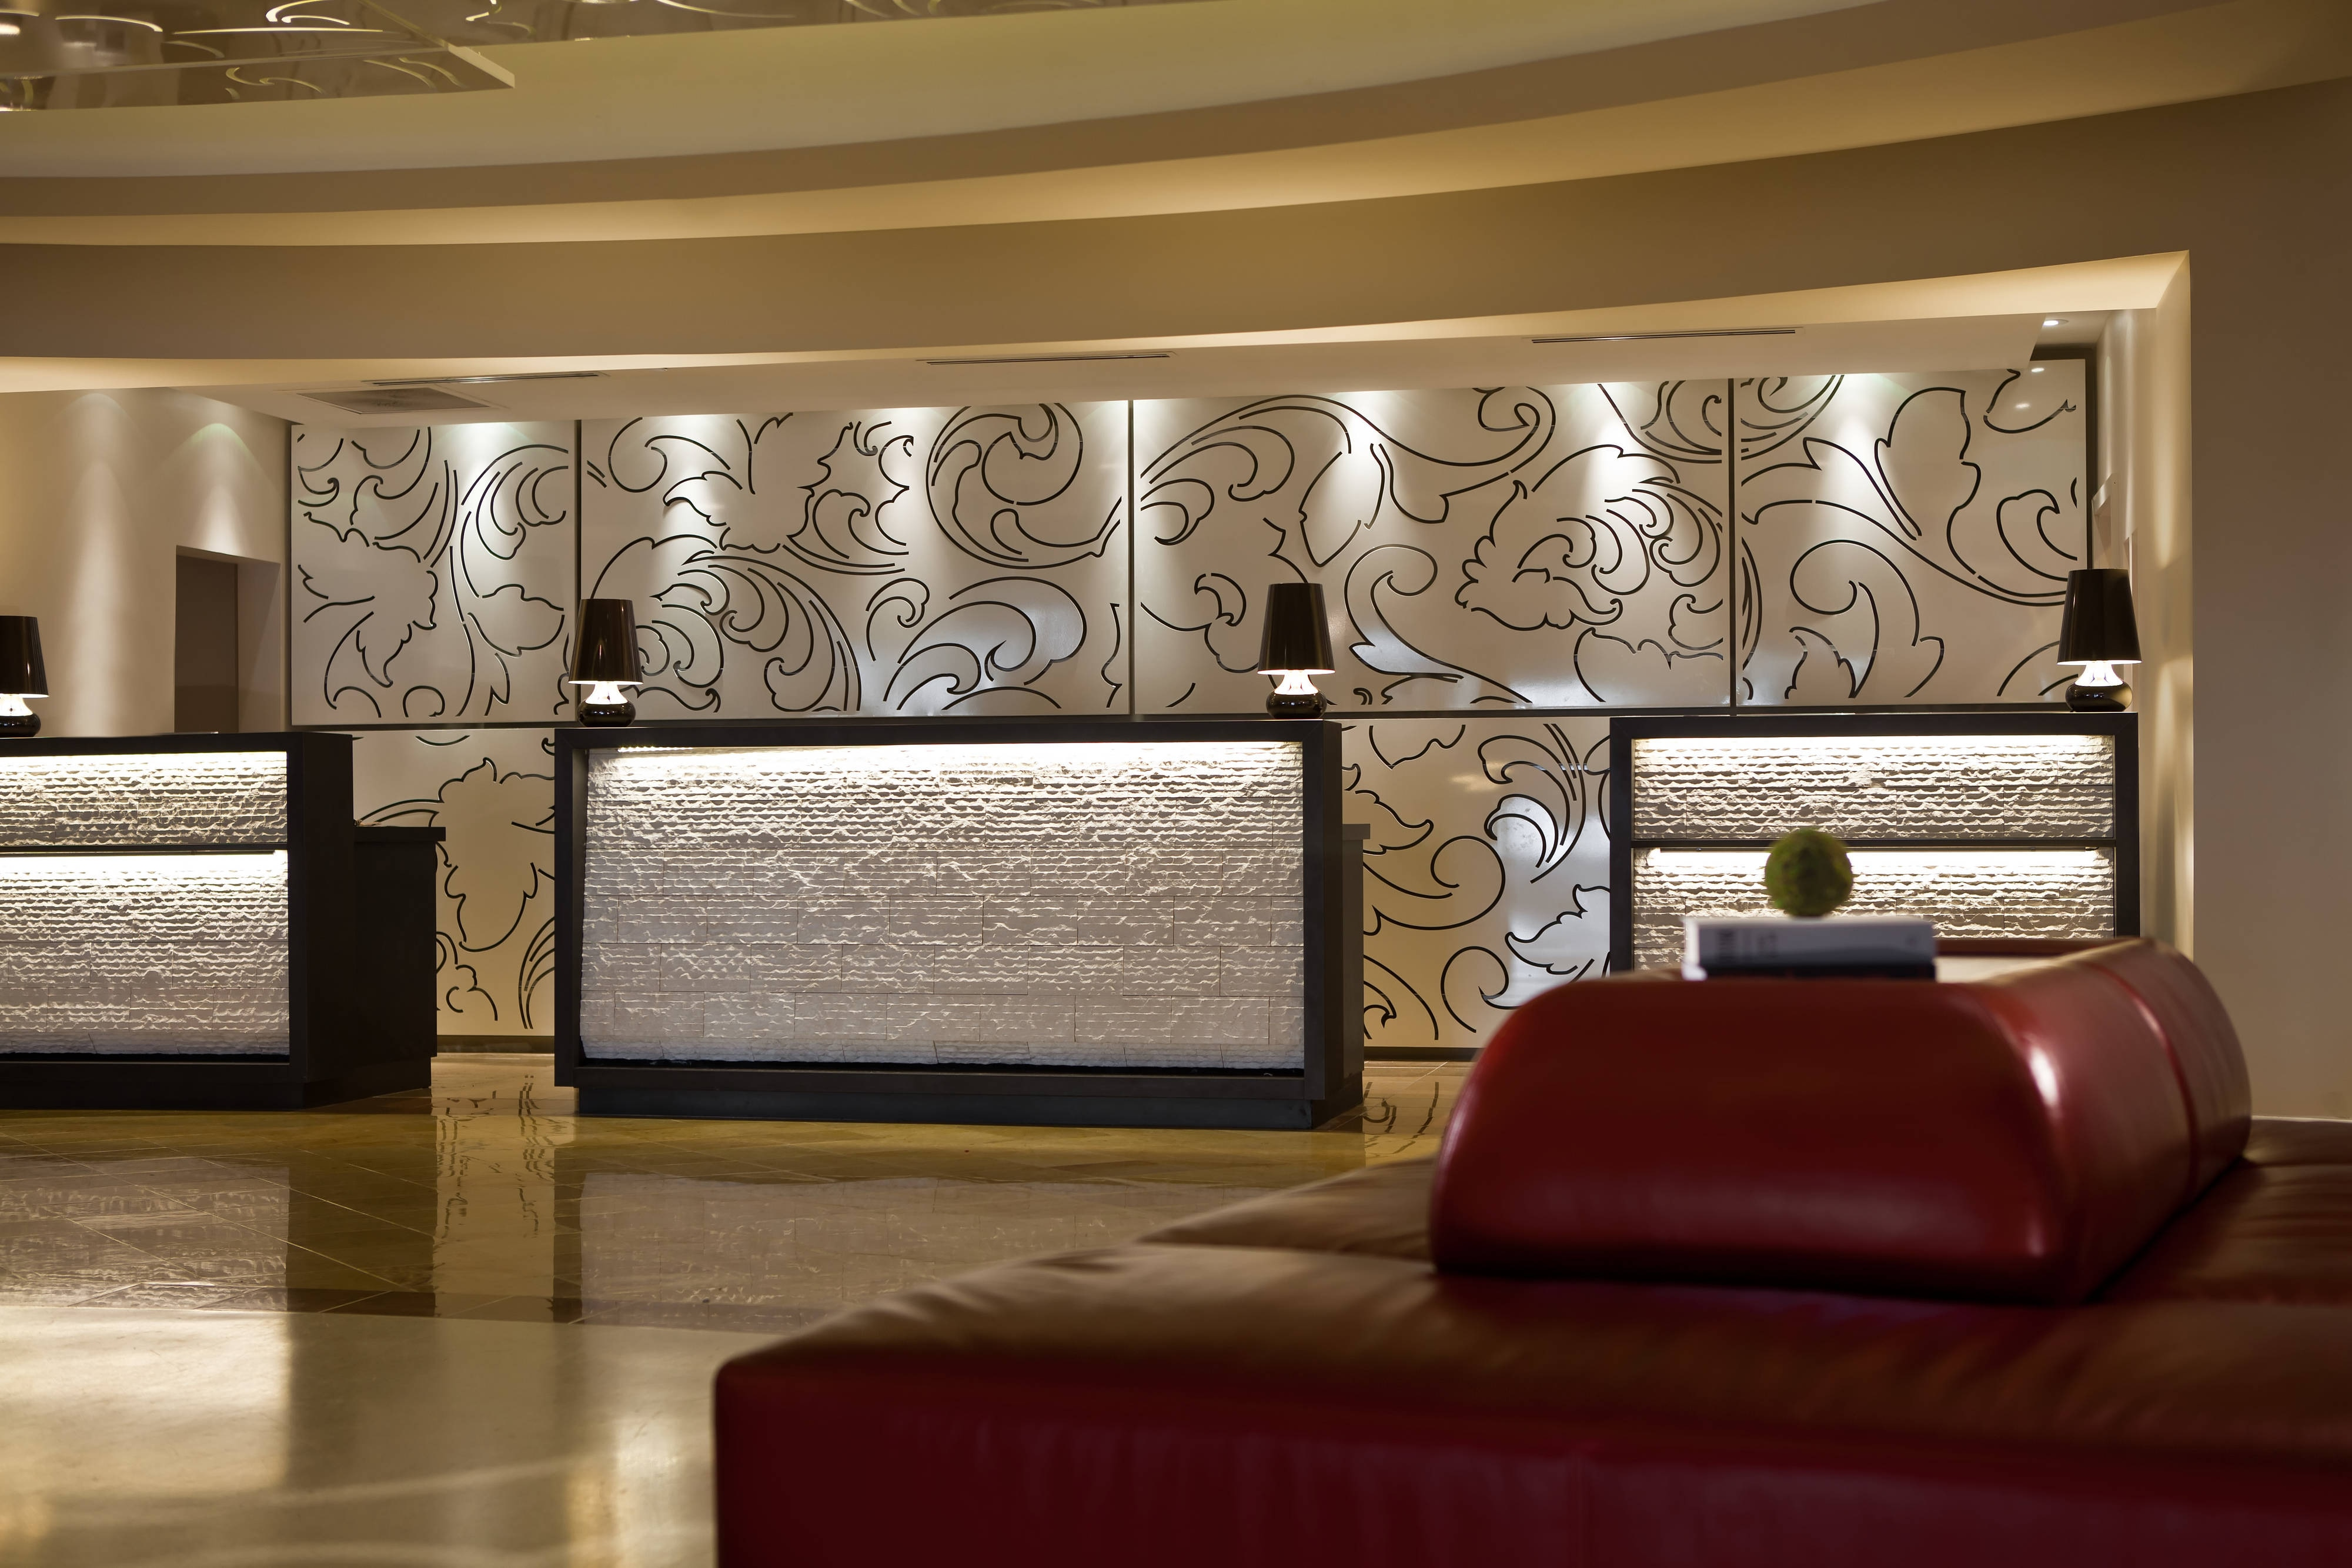 Newark airport hotel front desk